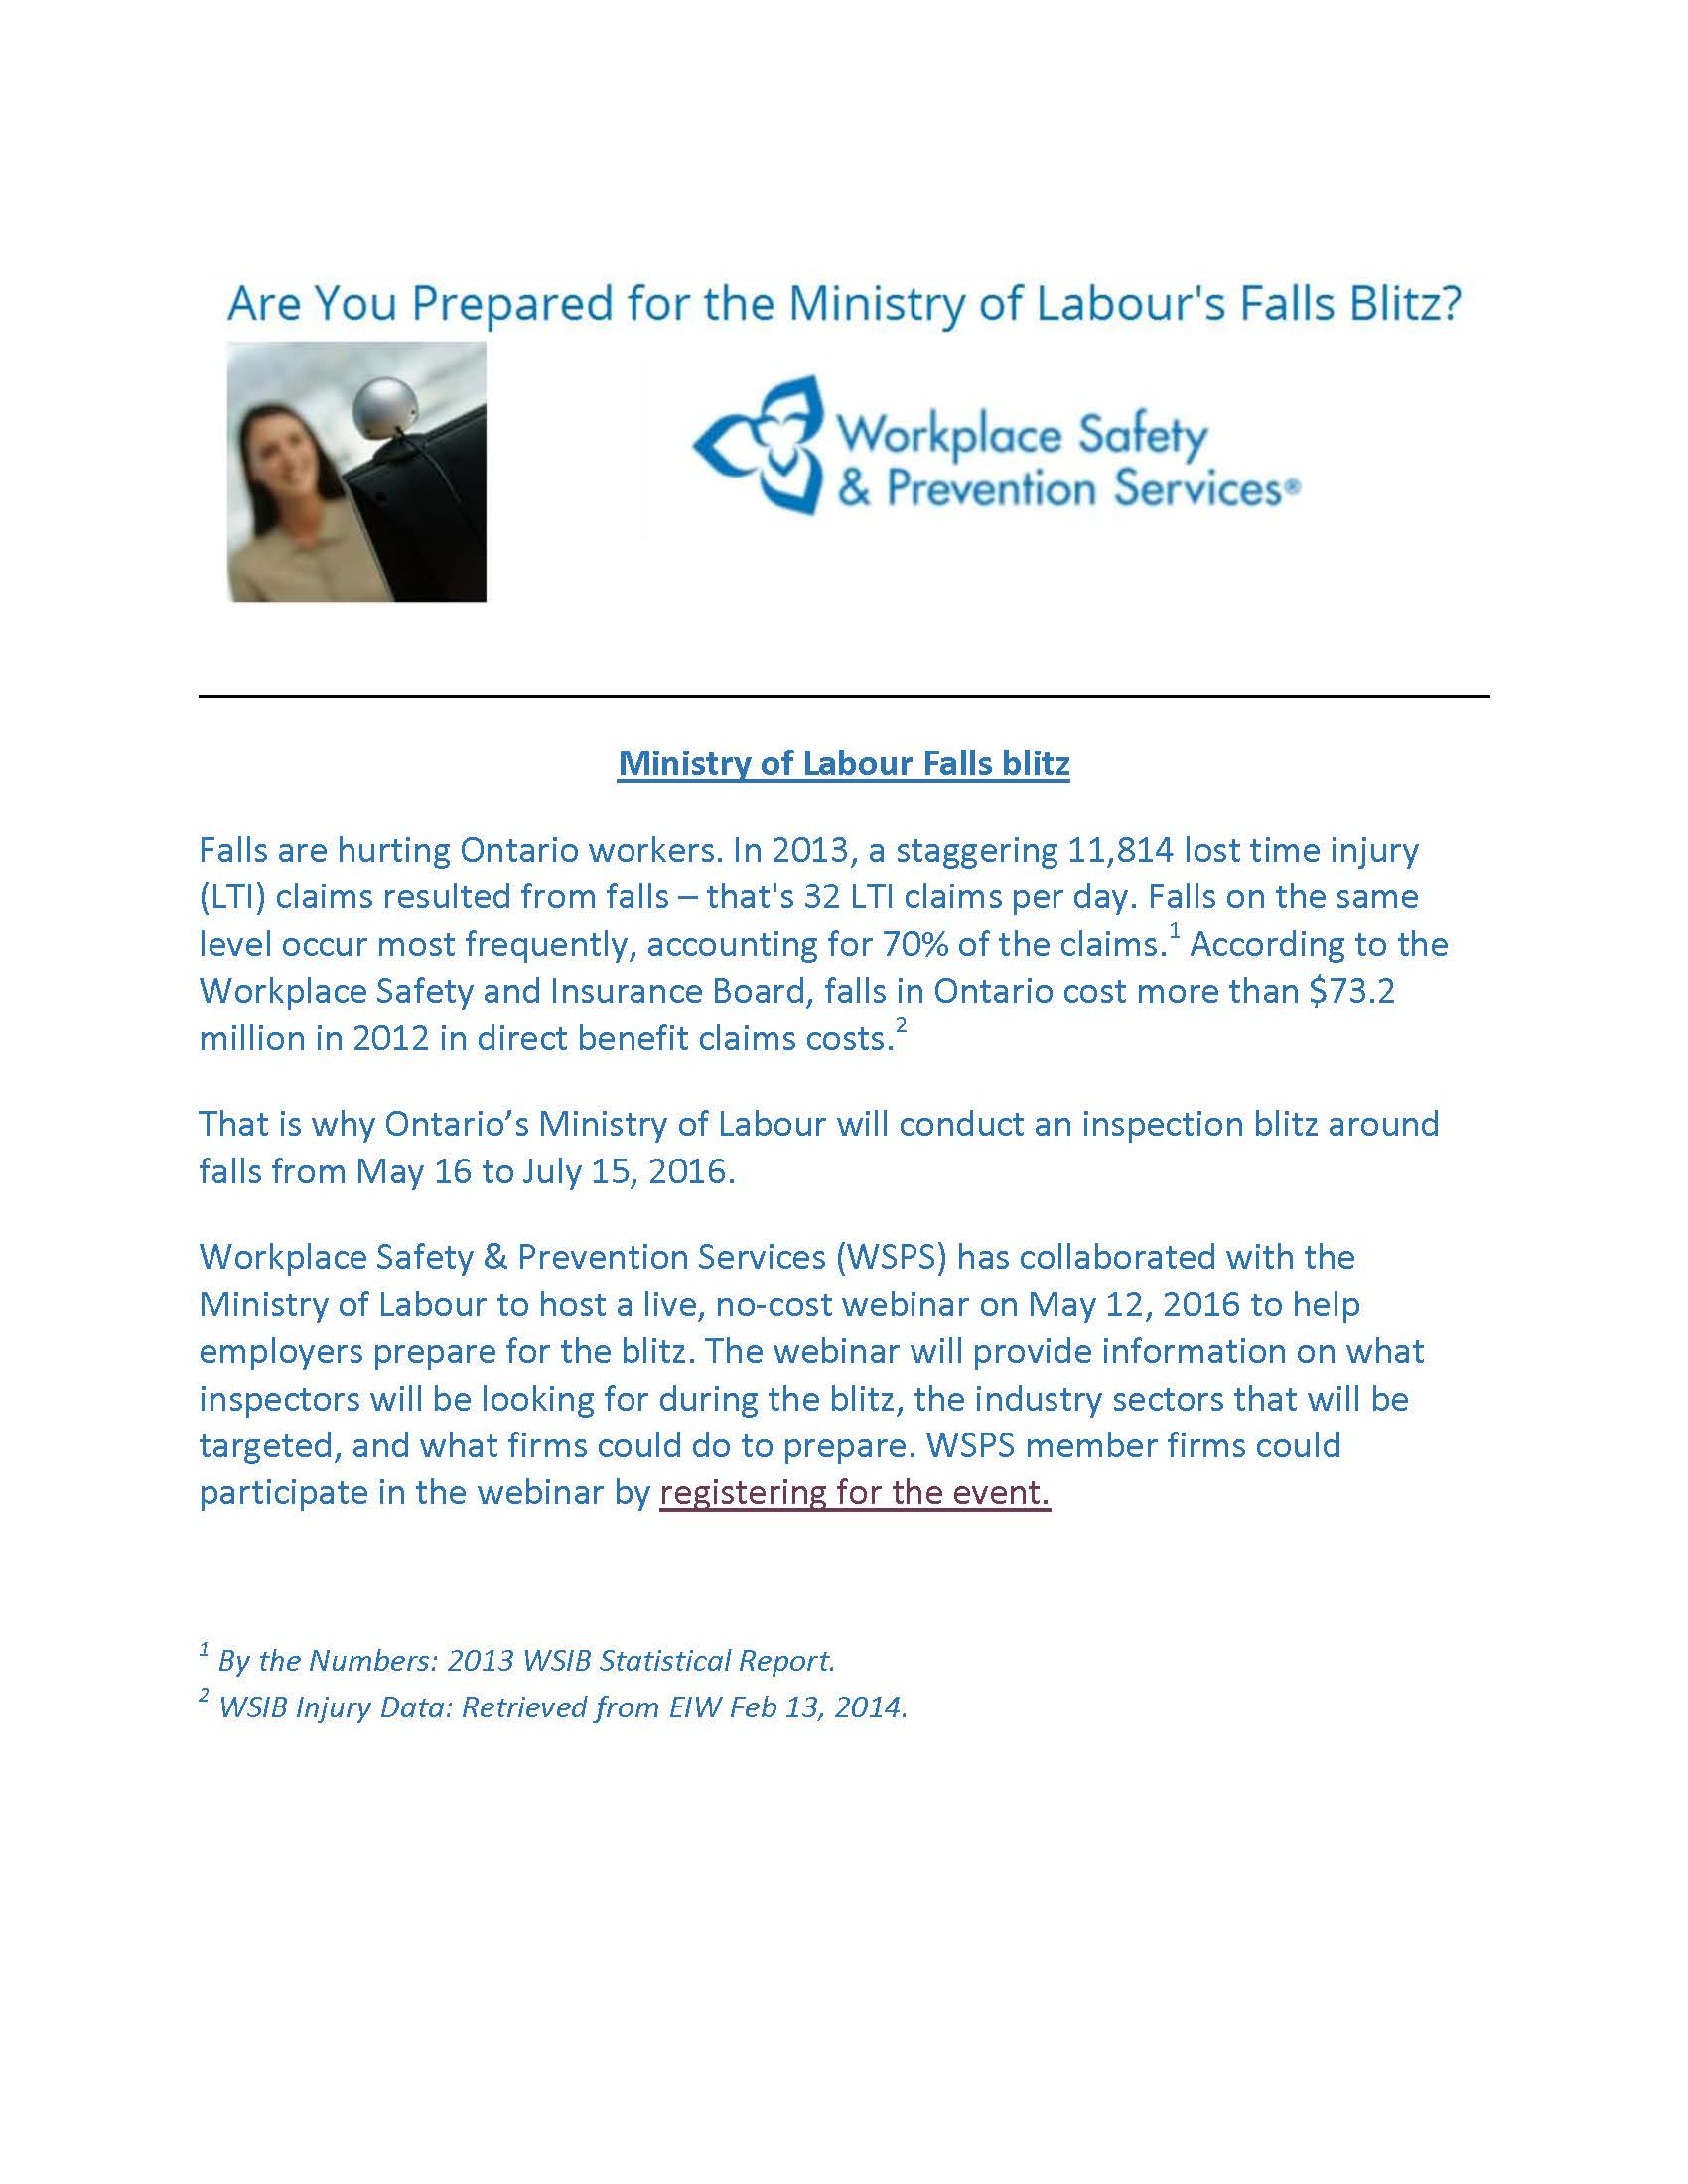 MINISTRY OF LABOUR'S FALLS BLITZ